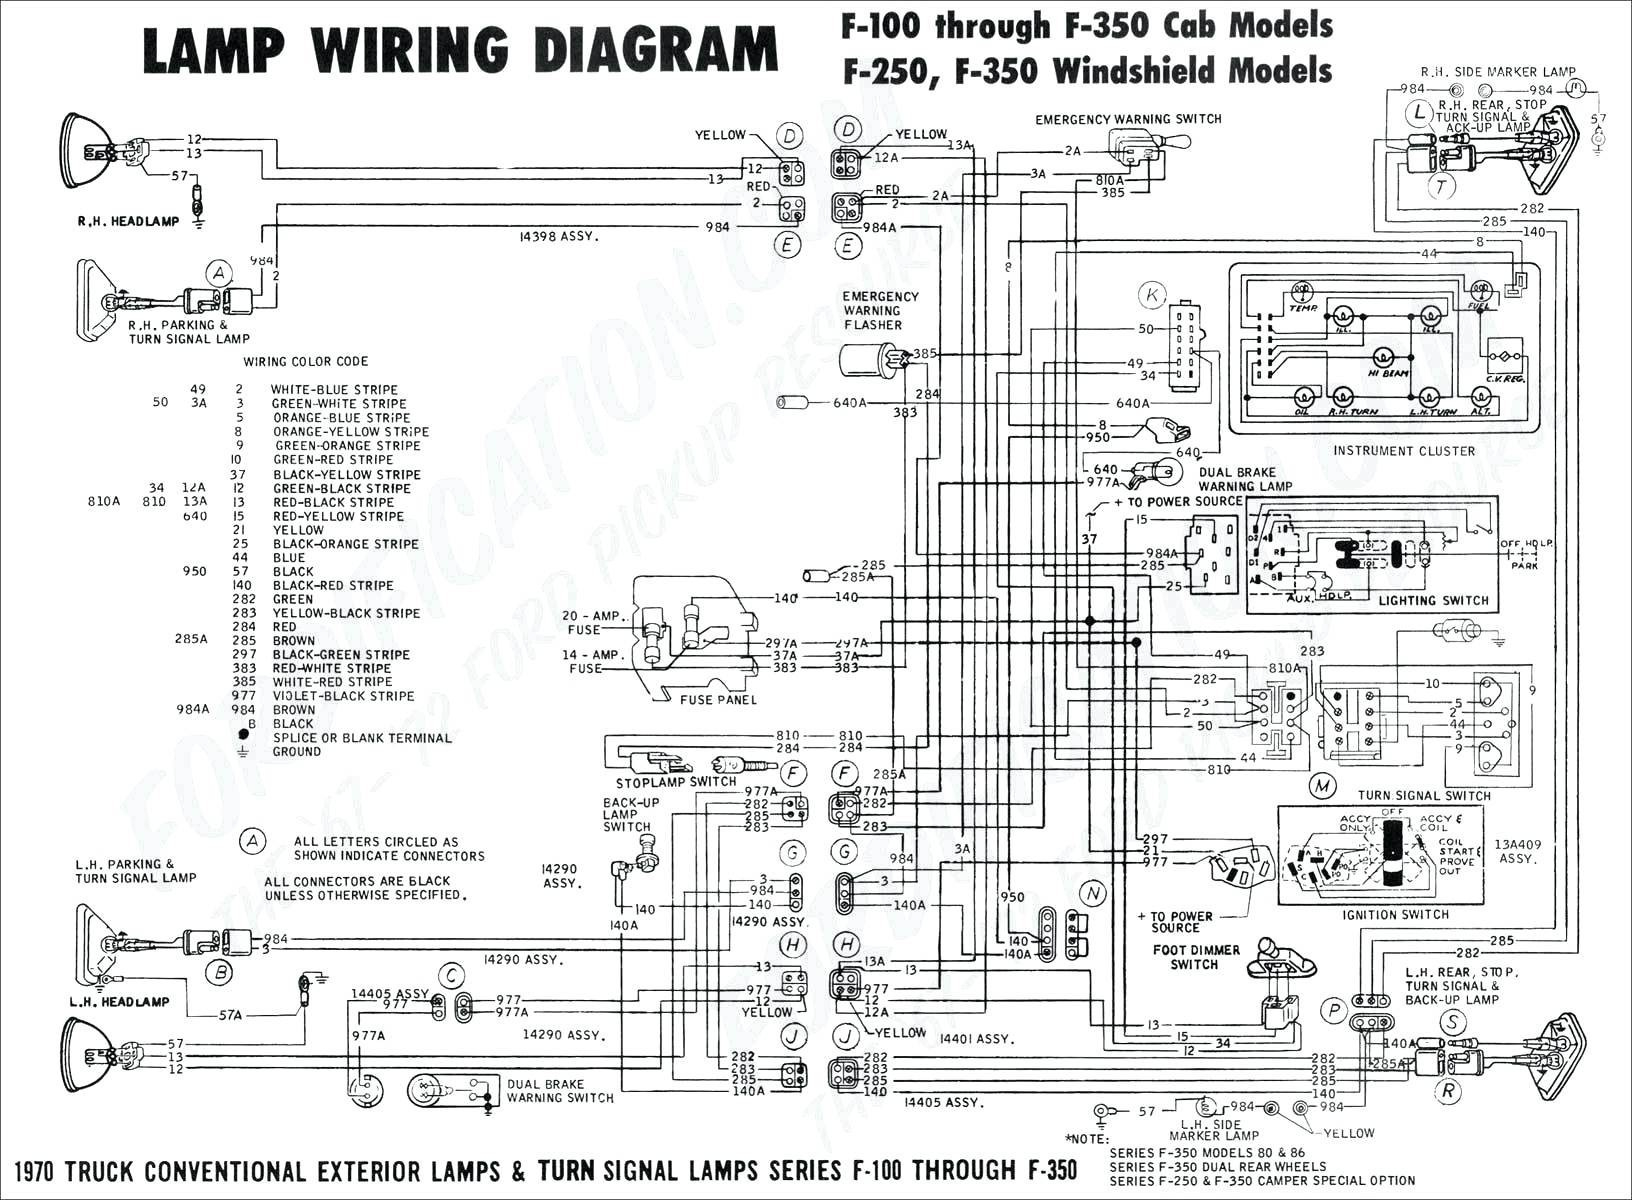 Rover 75 Webasto Wiring Diagram - Nice Place to Get Wiring Diagram on